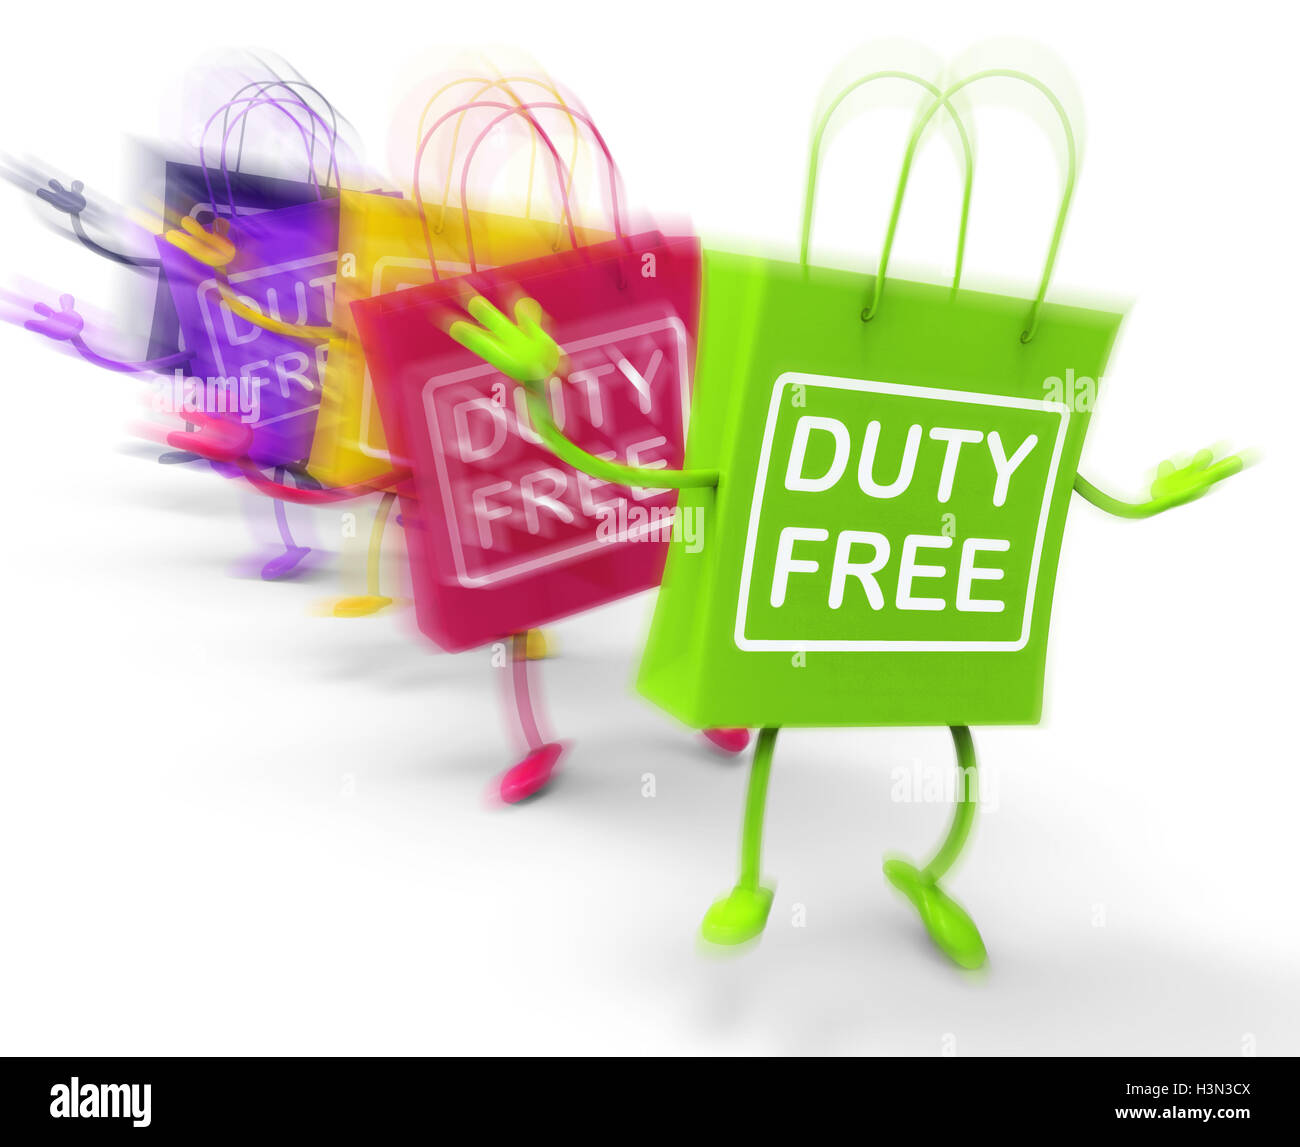 Duty Free Shopping Bags Show Tax Exempt Discounts Stock Photo ...